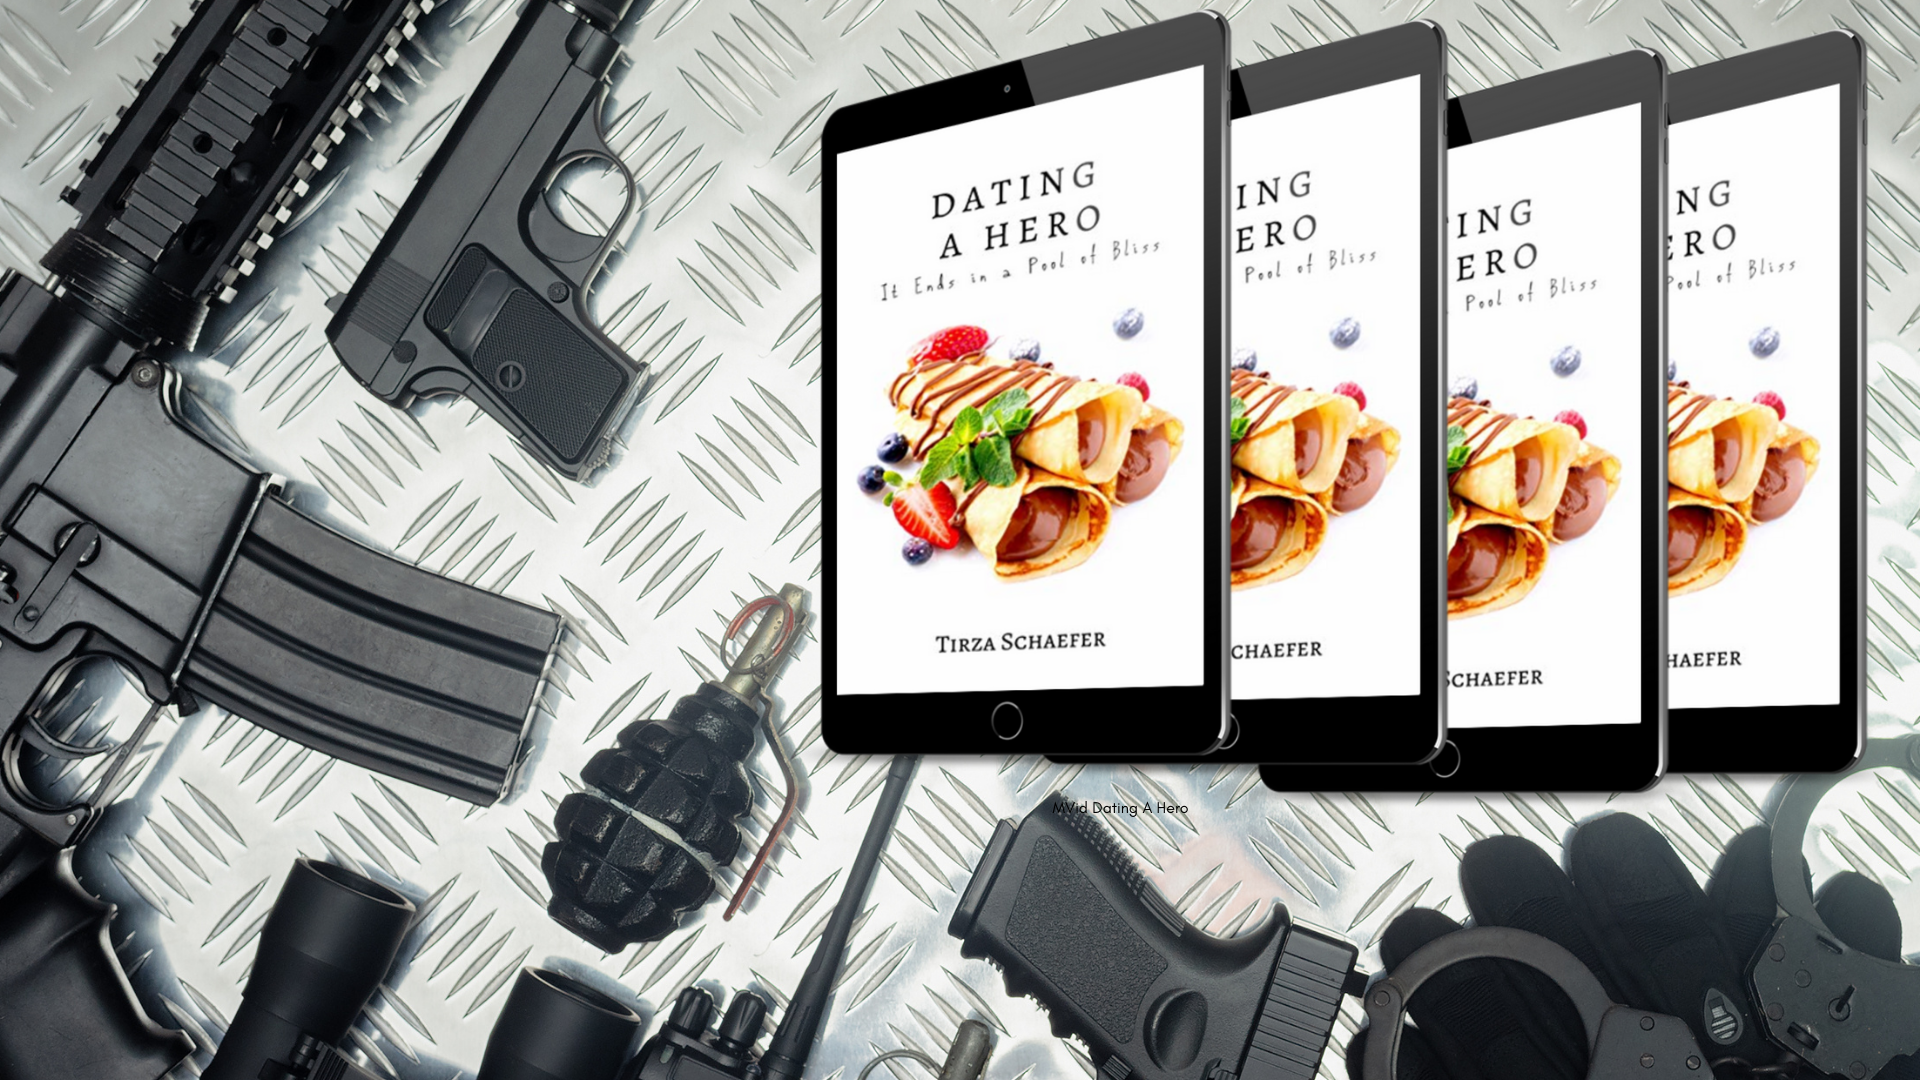 Dating a Hero: It Ends in a Pool of Bliss by Tirza Schaefer